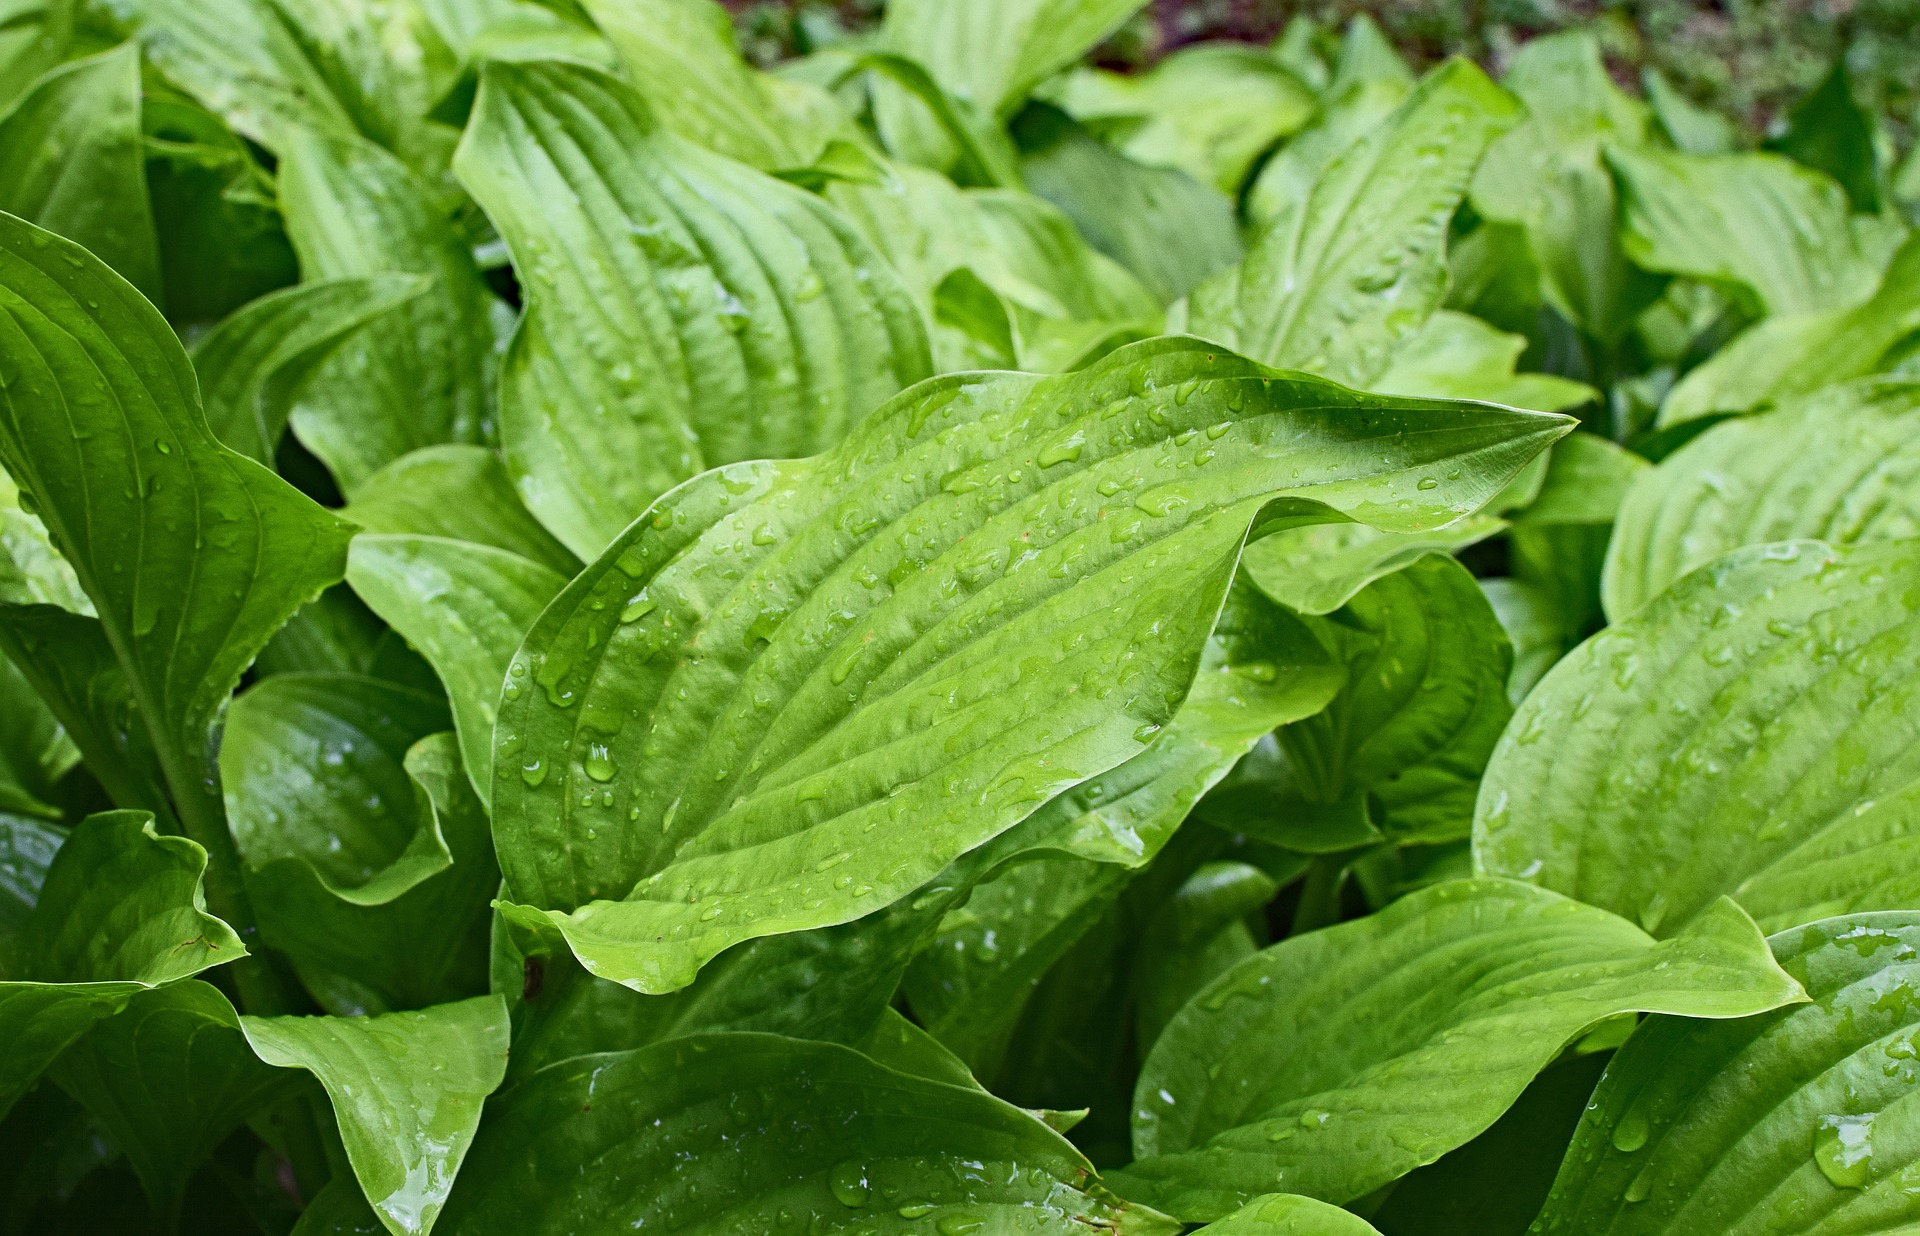 rain-wet-plantain-lily-leaves-2438603_1920.jpg